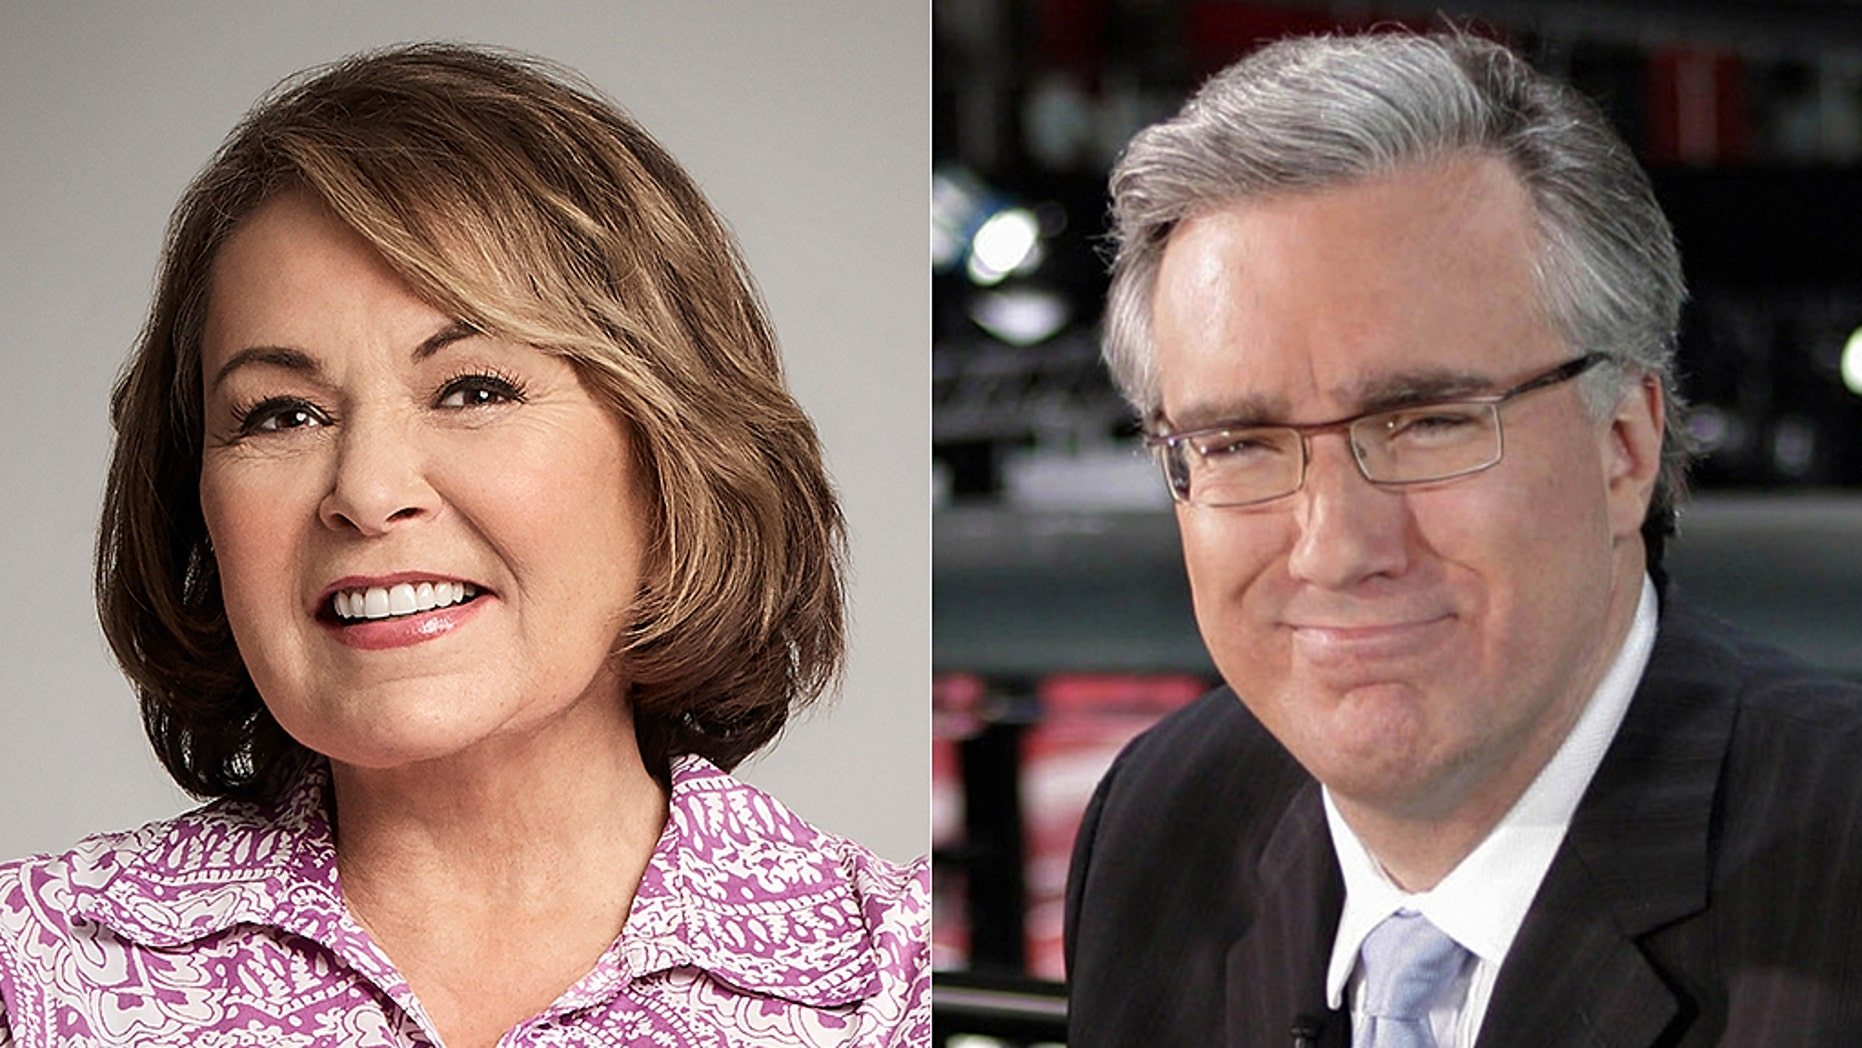 Roseann Barr was fired by Disney for a racist tweet, but ESPN's Keith Olbermann has a Twitter feed filled with hateful rhetoric.